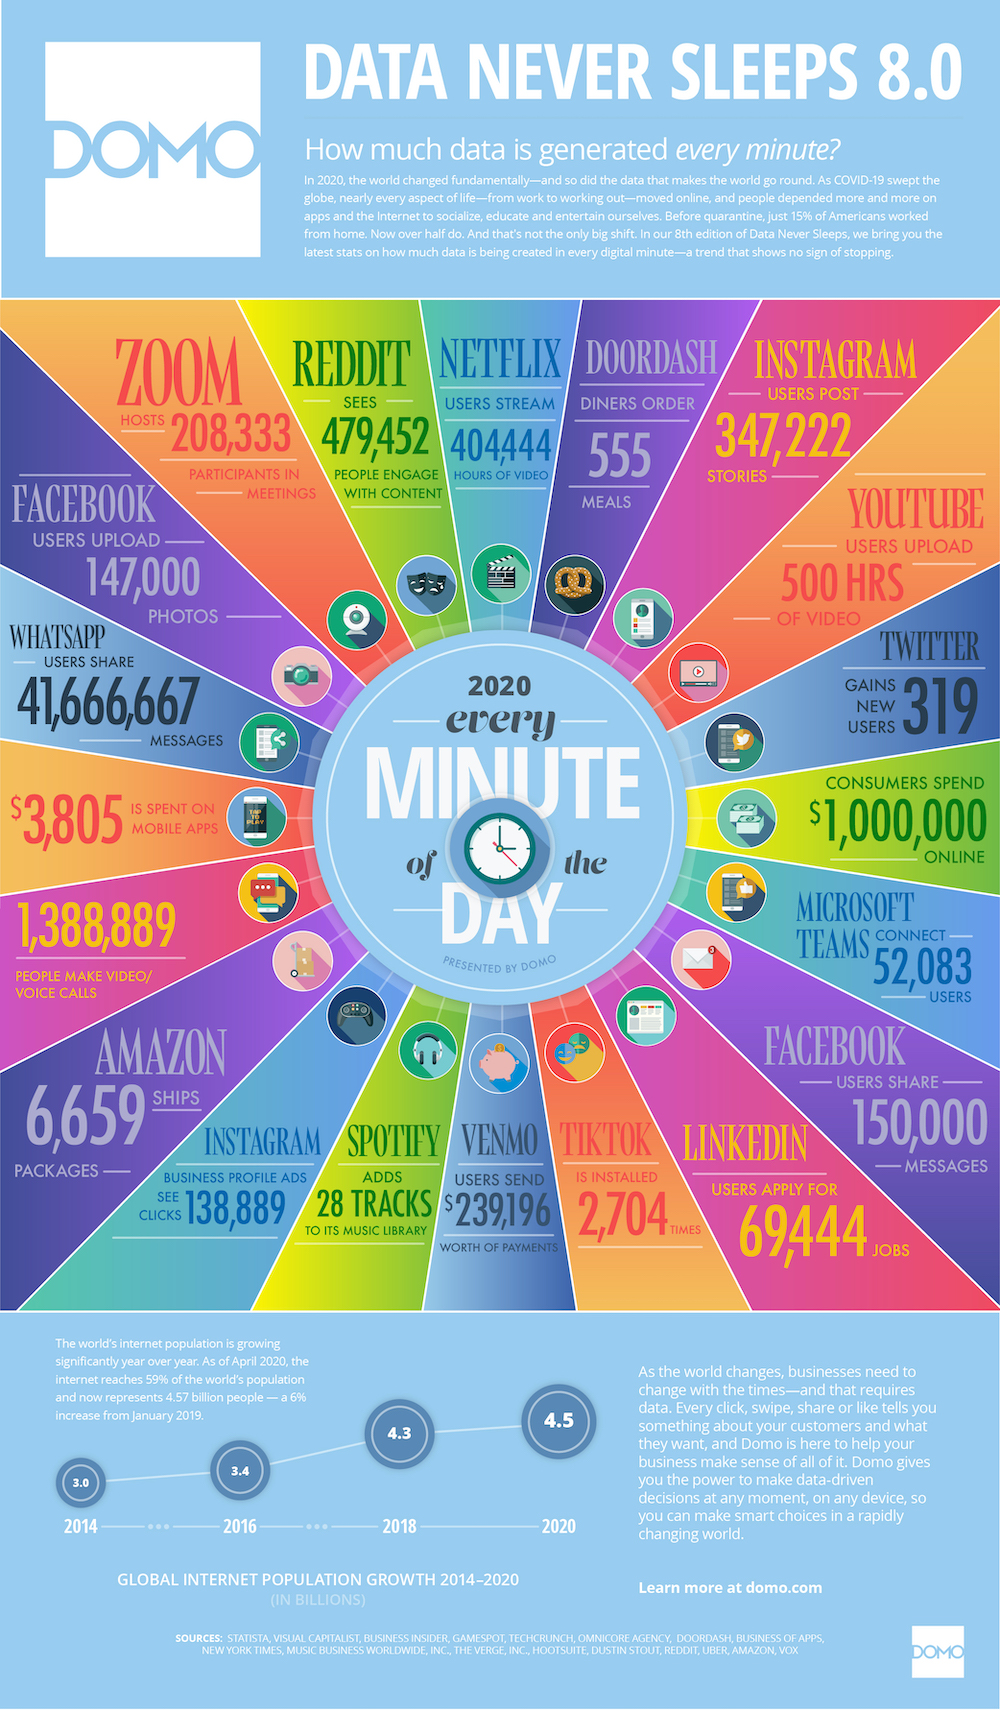 What Happens in an Internet Minute 2020